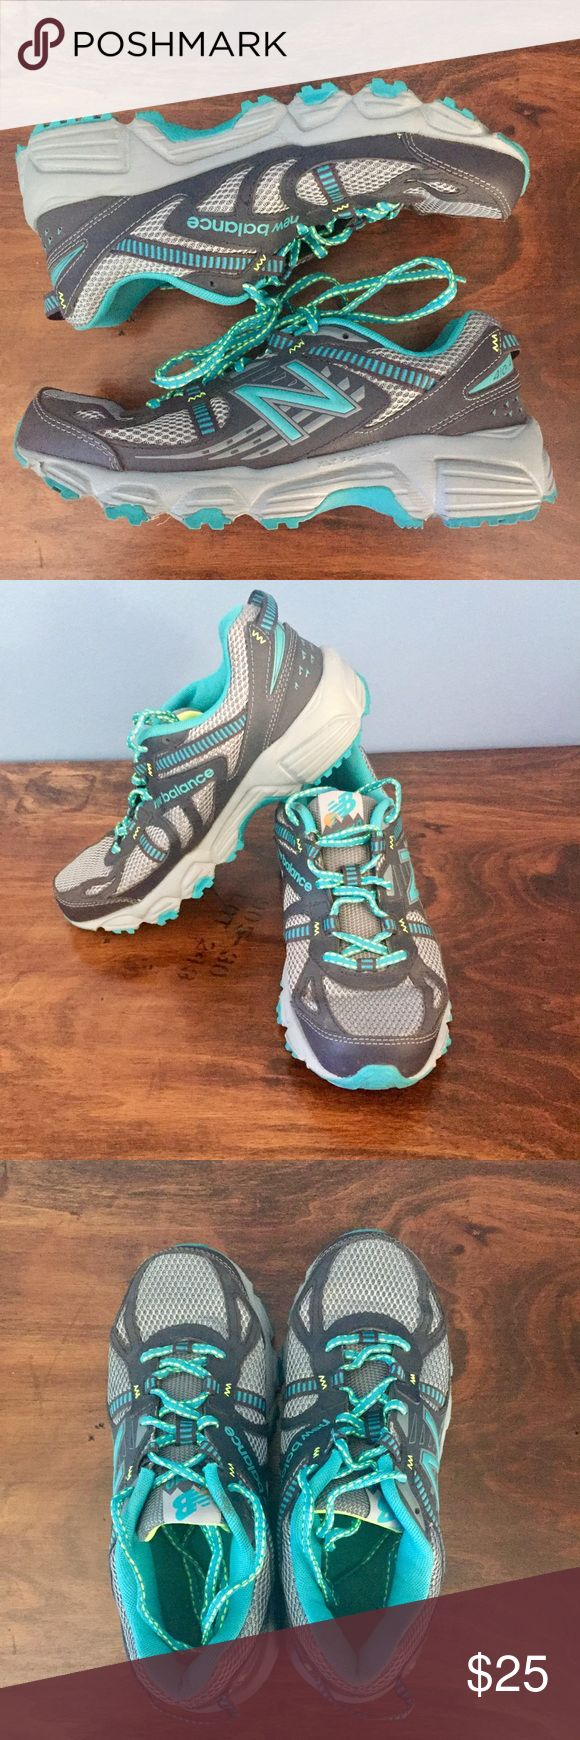 New Balance 410v4 Trail Runner sneakers 🏃 Amazing New Balance trail runner sneakers. These babies are ready for summer and the open road! Only worn a couple times, the tread and insoles are in amazing condition. EUC, no rips, tears or stains. From smoke free home. New Balance Shoes Sneakers